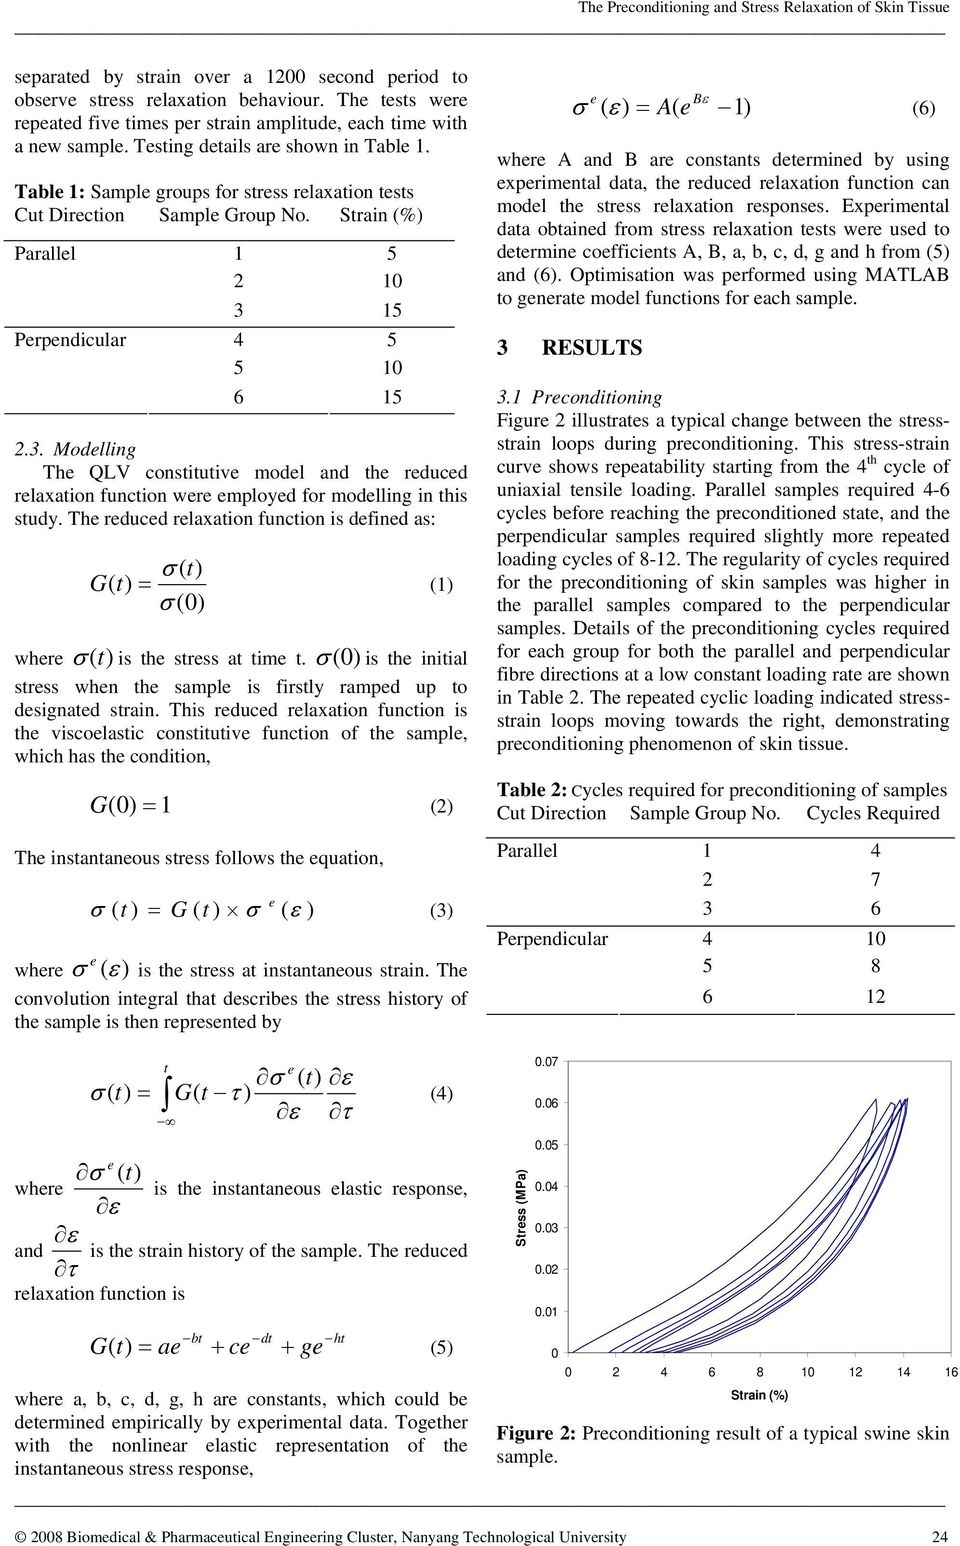 15 4 5 5 1 6 15 2.3. Modelling The QLV constitutive model and the reduced relaxation function were employed for modelling in this study.